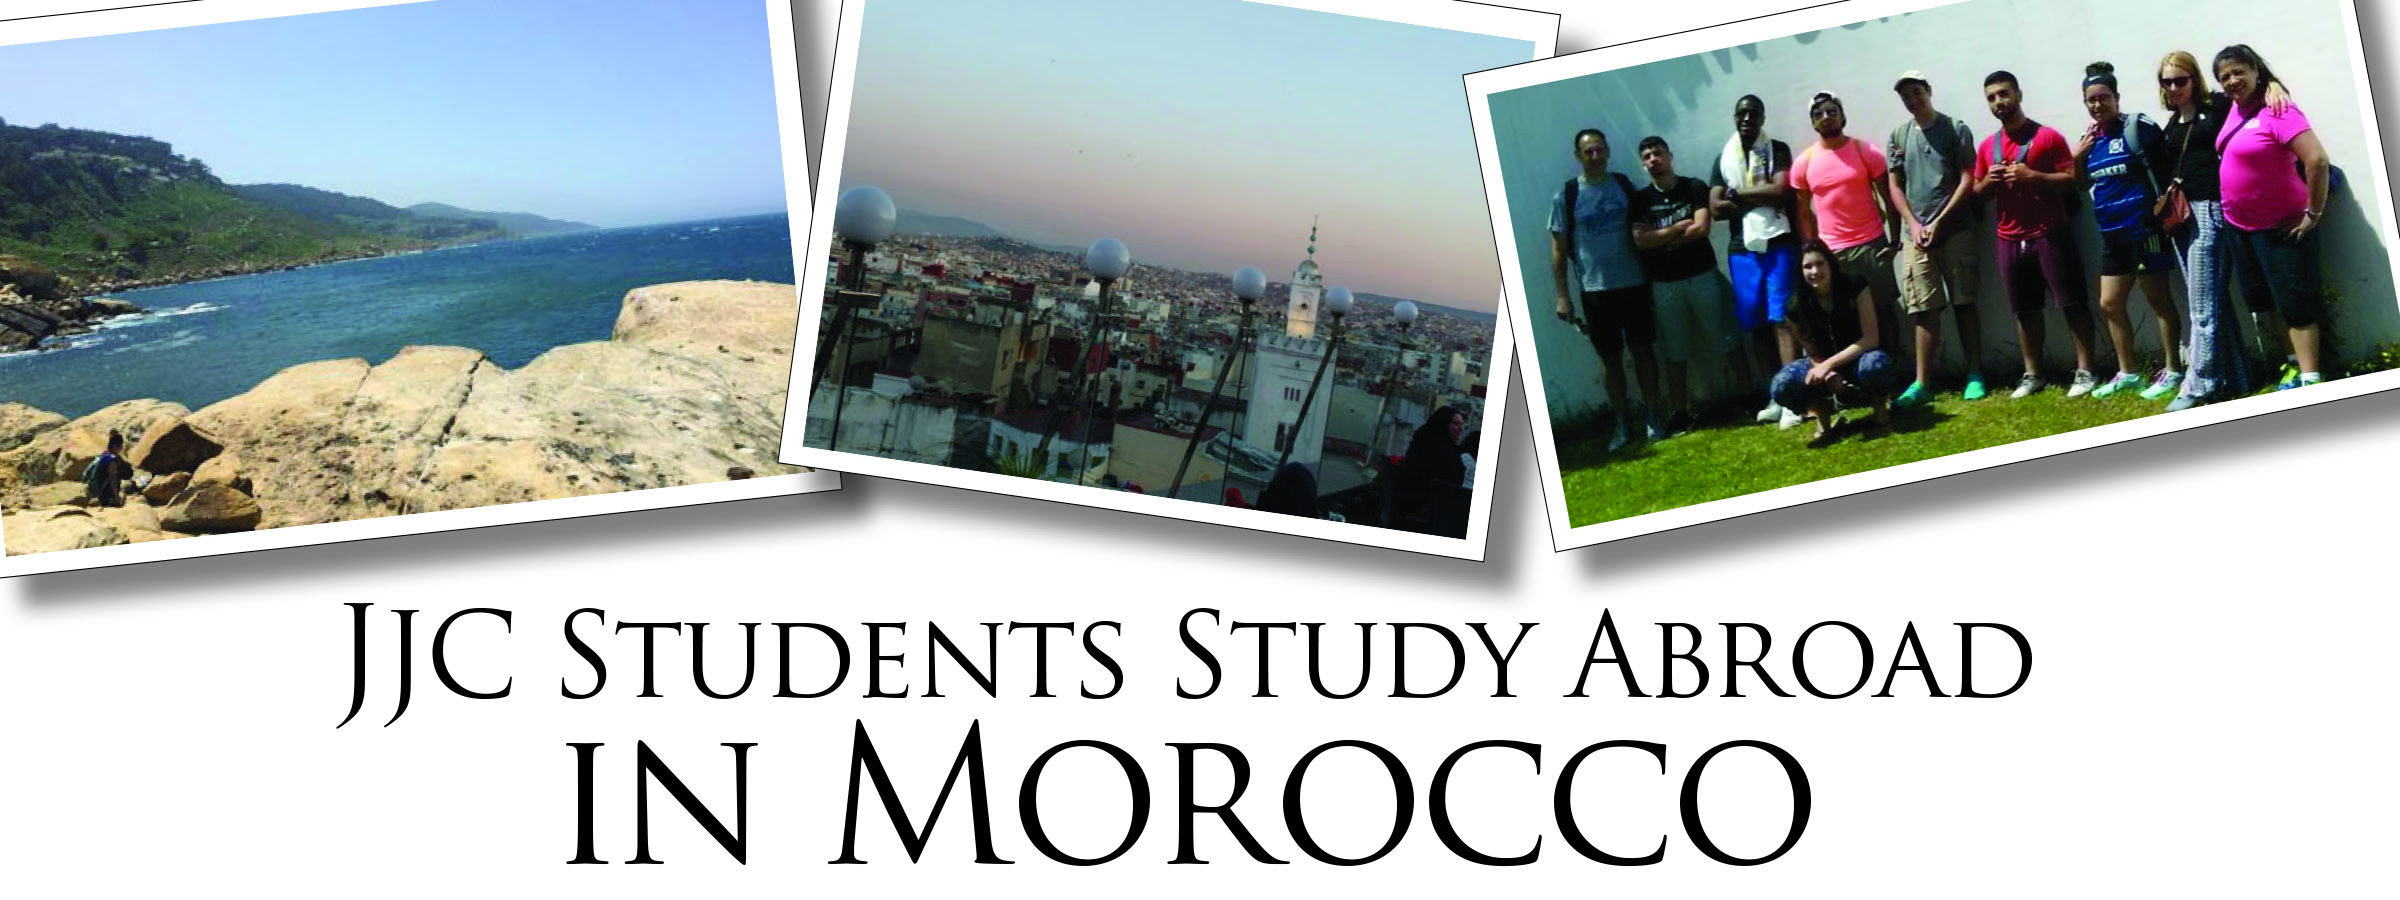 jjc students study abroad in morocco